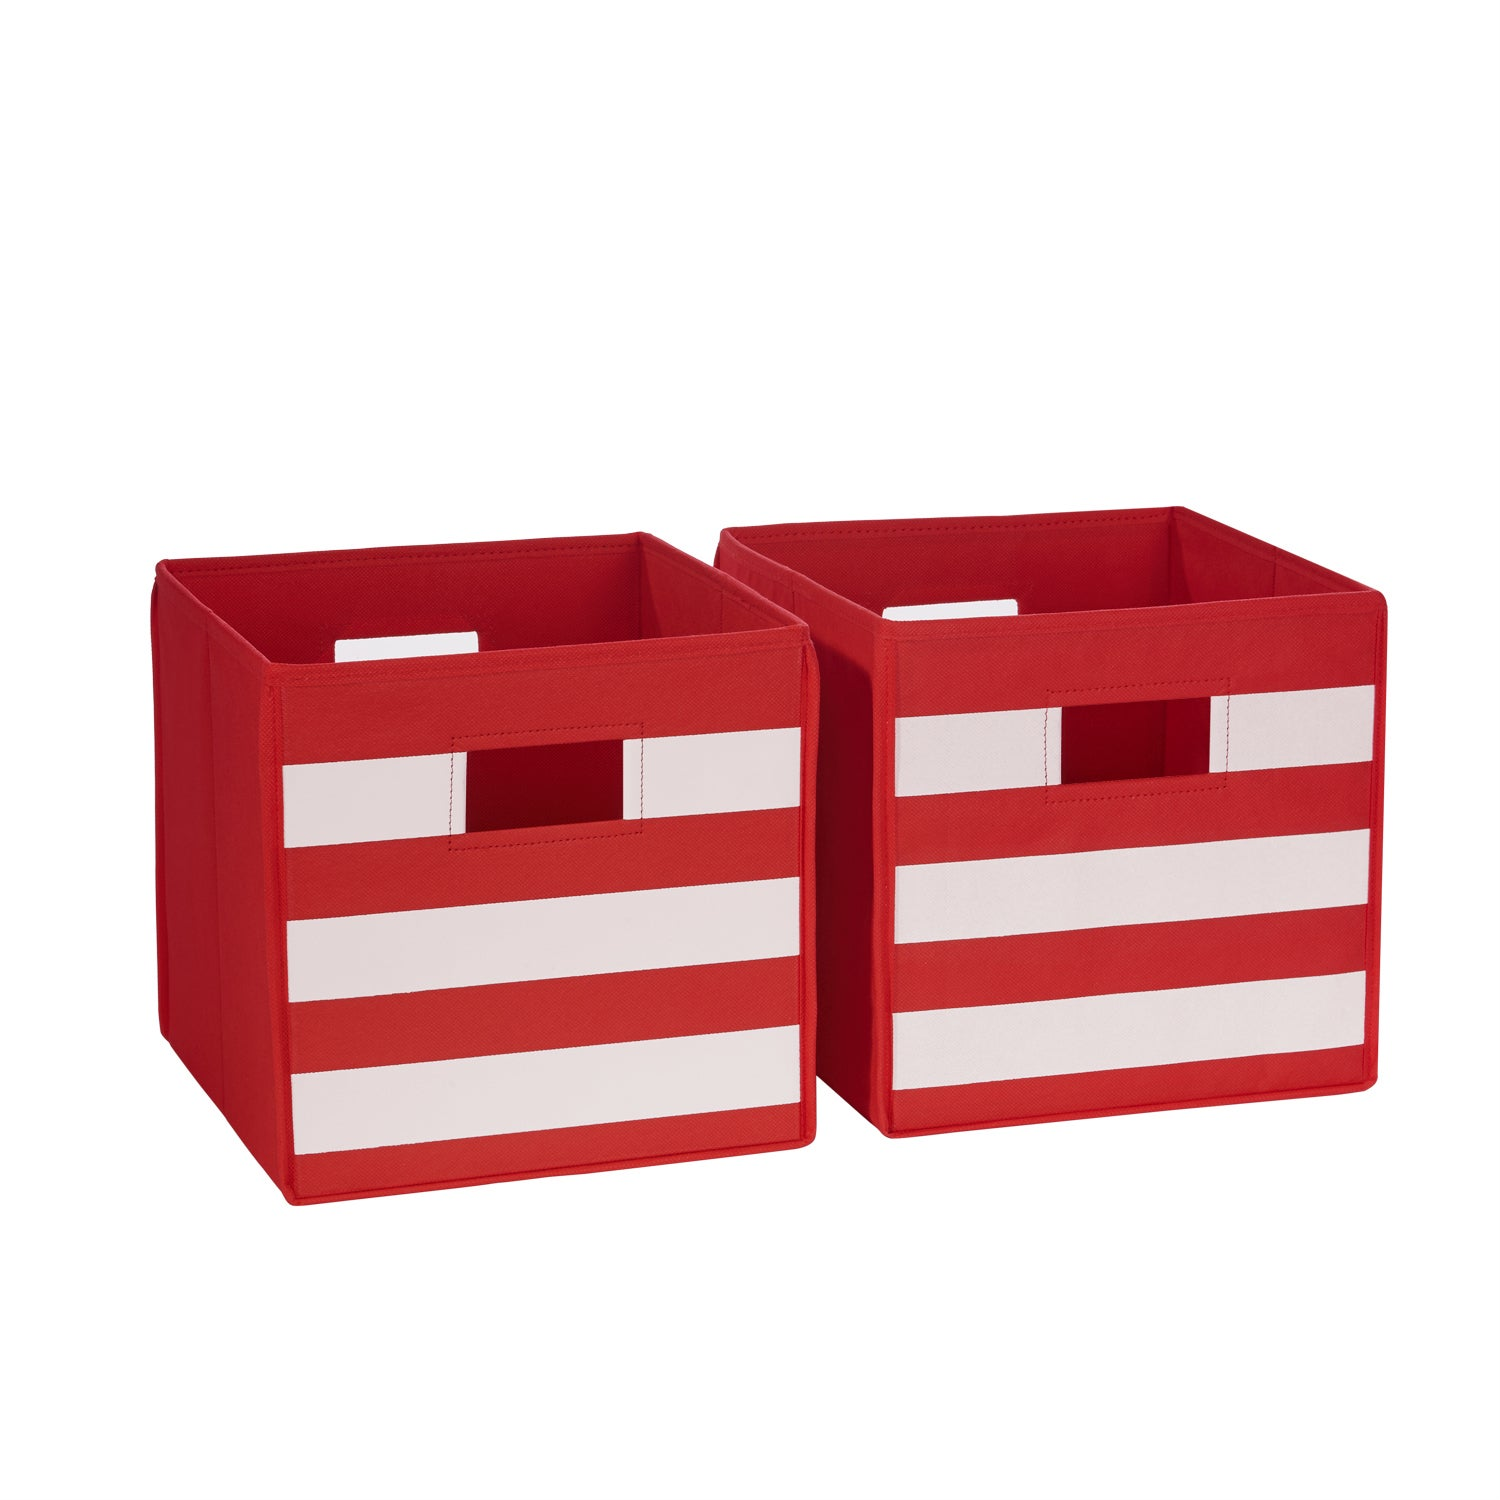 Shop RiverRidge Kids Folding Storage Bins With Handles (Set Of 2)   Free  Shipping On Orders Over $45   Overstock.com   8352538